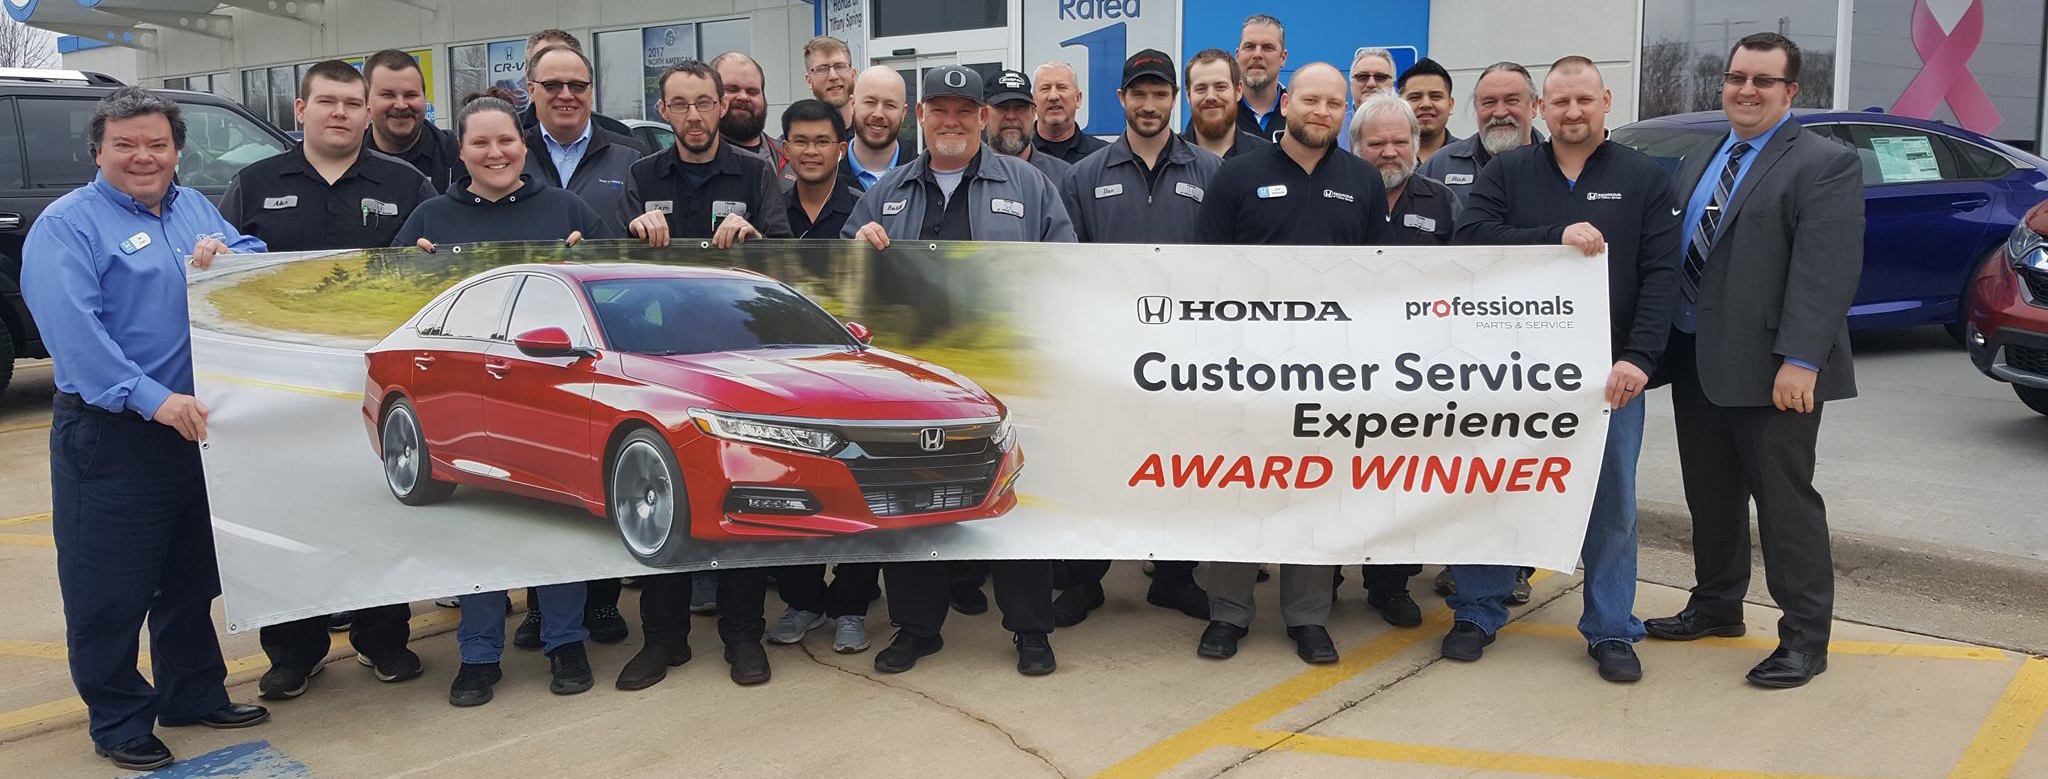 Honda of Tiffany Springs Awards & Recognitions.jpg